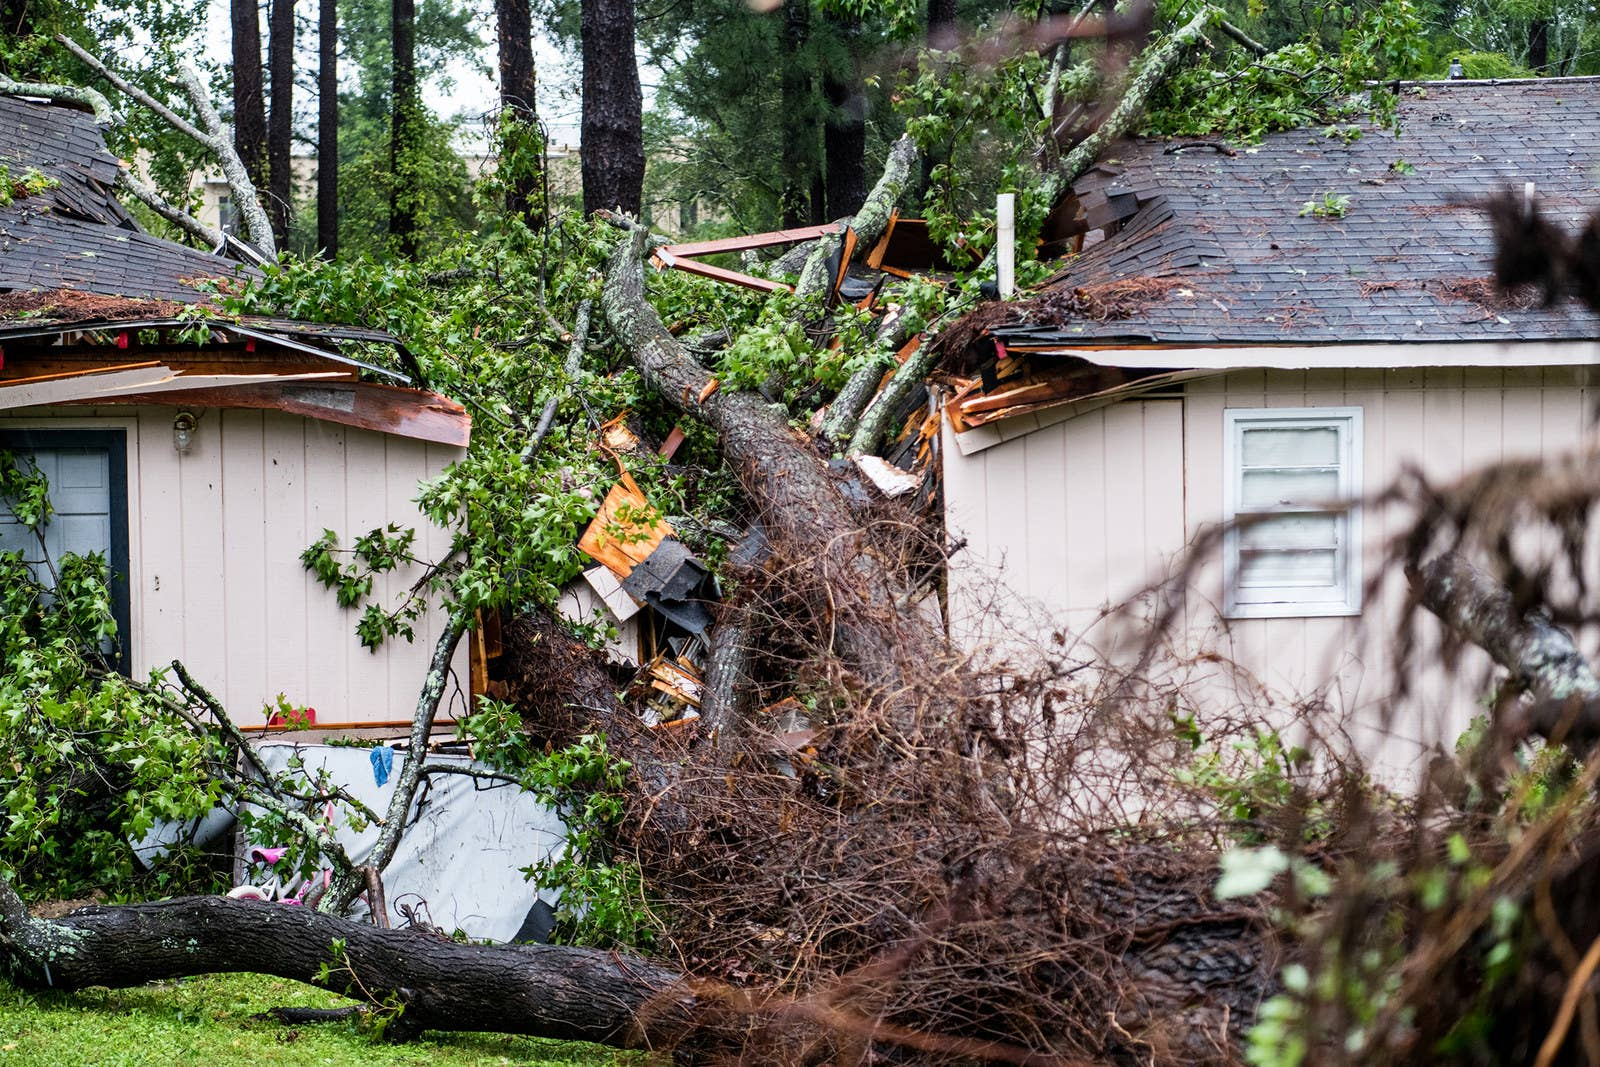 A fallen tree rests on a house after remnants of Hurricane Michael passed through Columbia, South Carolina. The accident sent at least one person to the hospital.